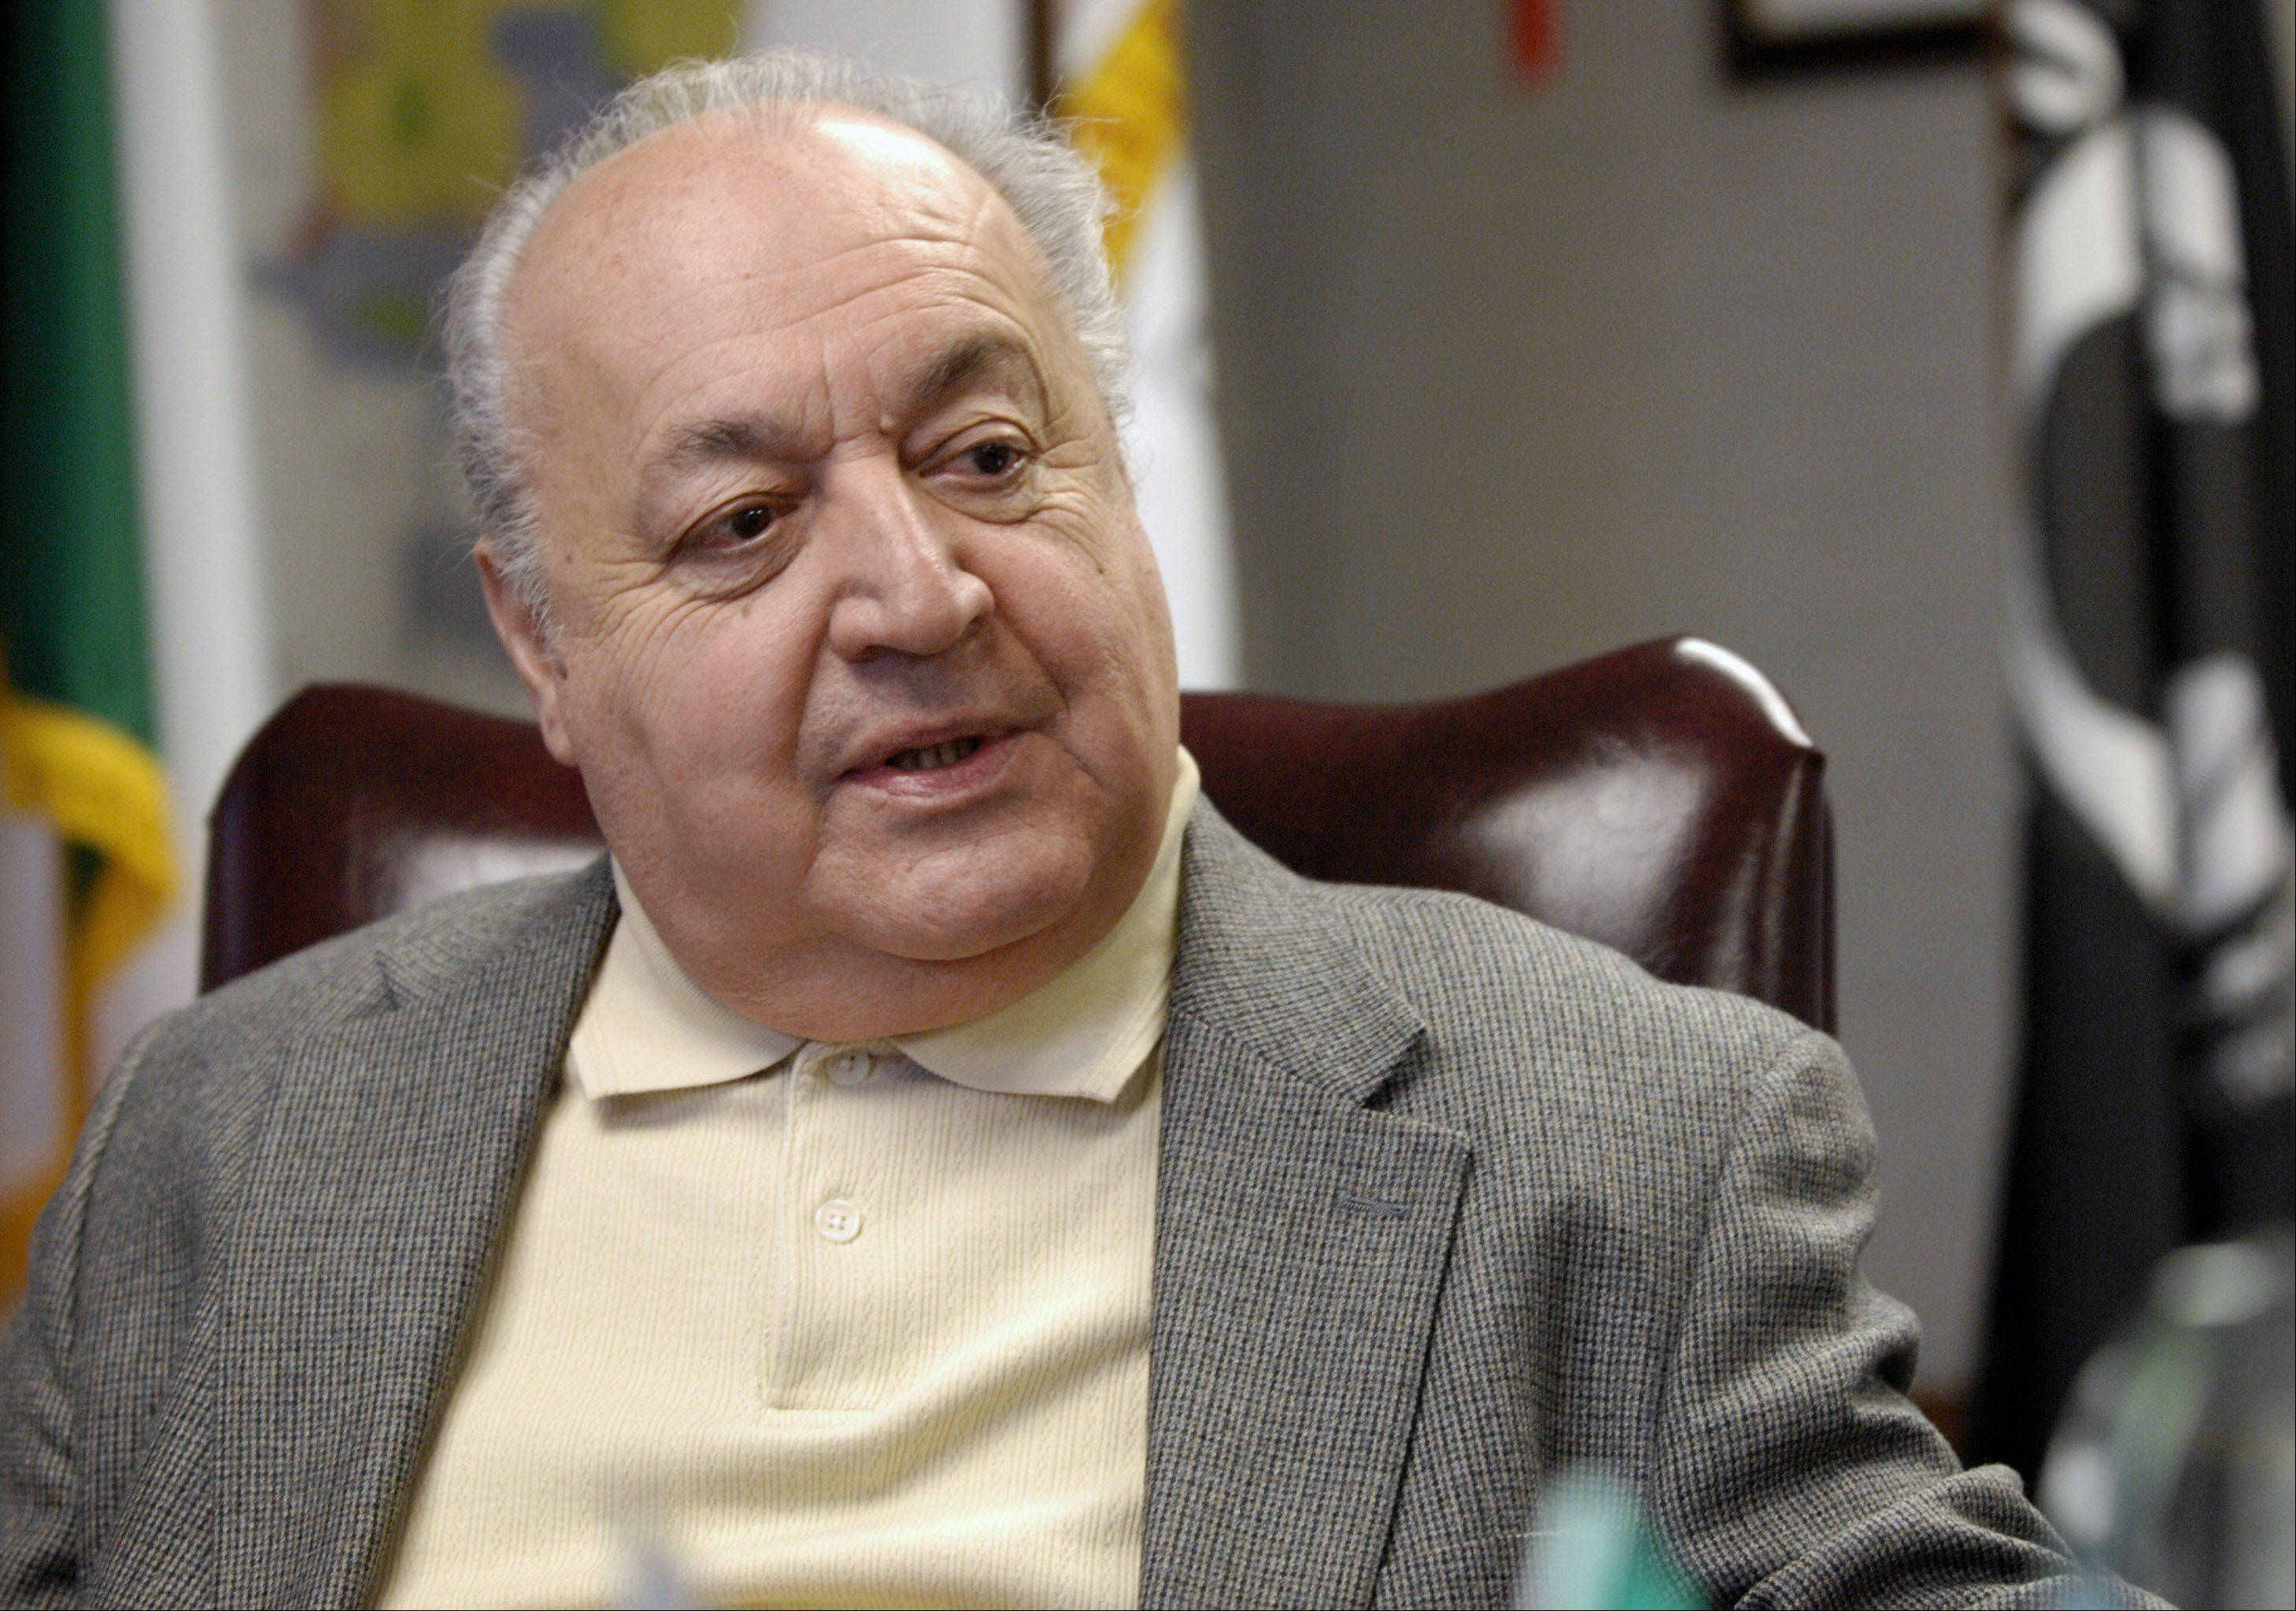 Former Des Plaines mayor Tony Arredia is considering running again for the post he was forced to leave in 2009 due to term limits.